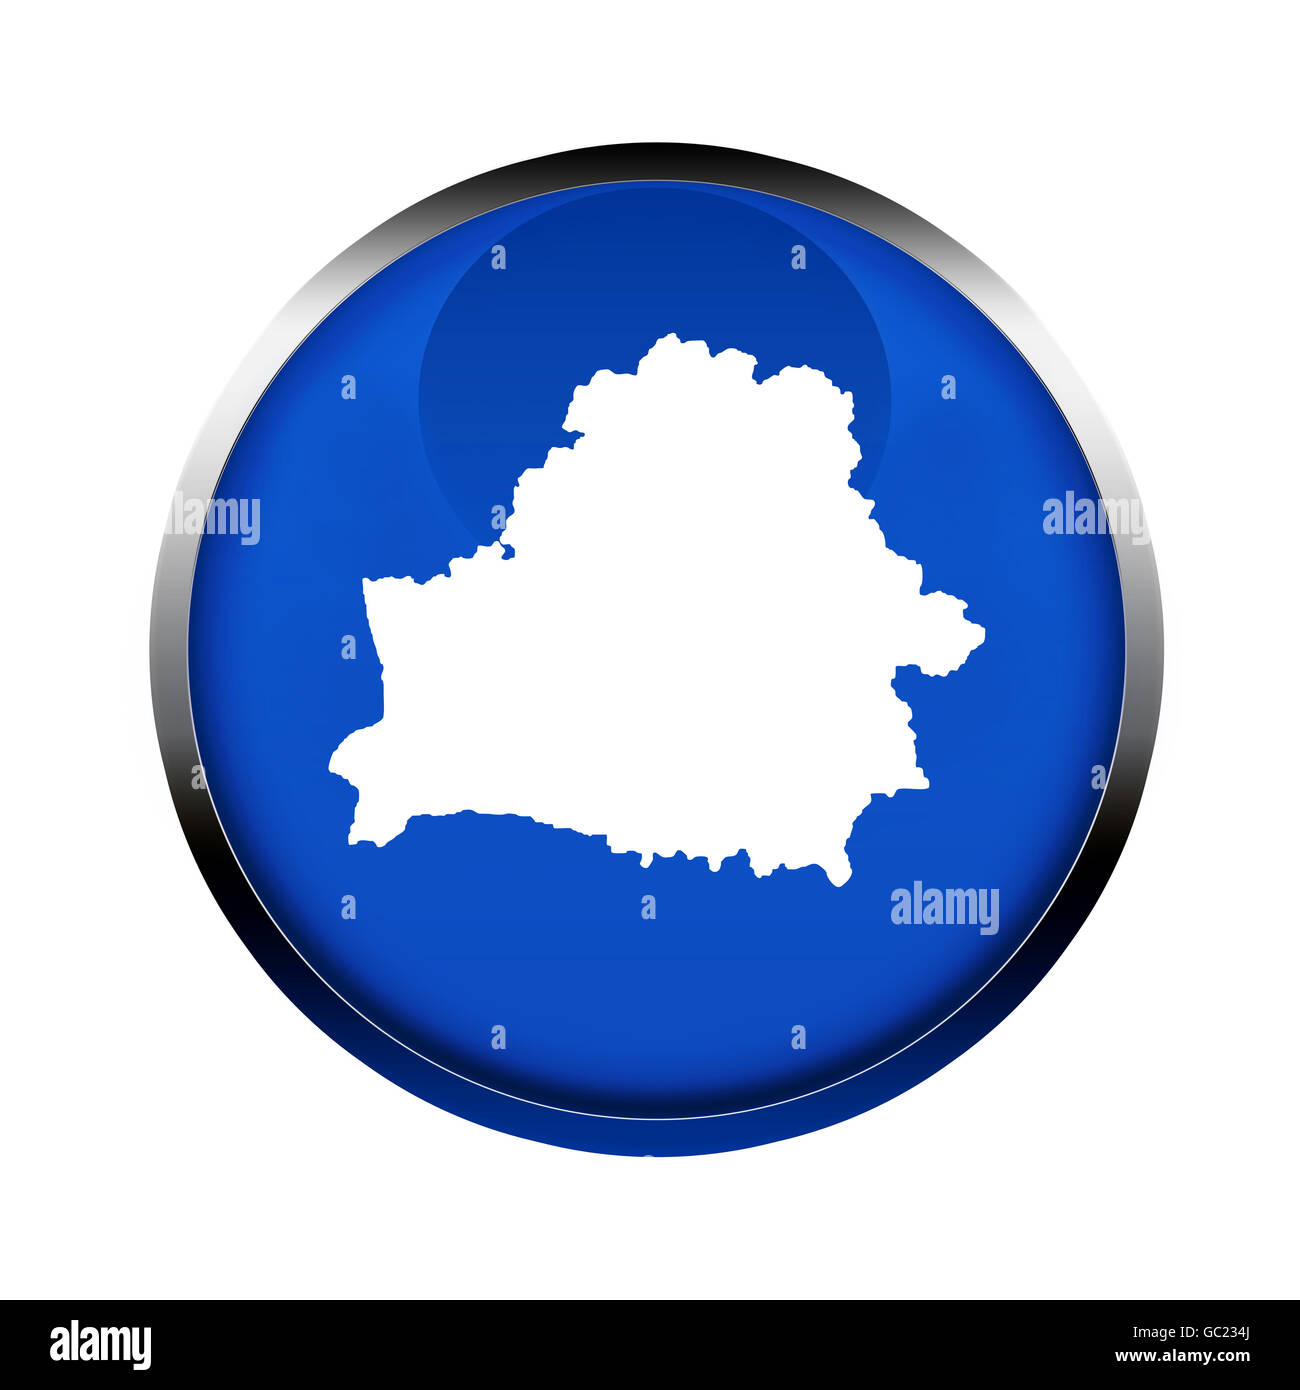 Belarus map button in the colors of the European Union. - Stock Image